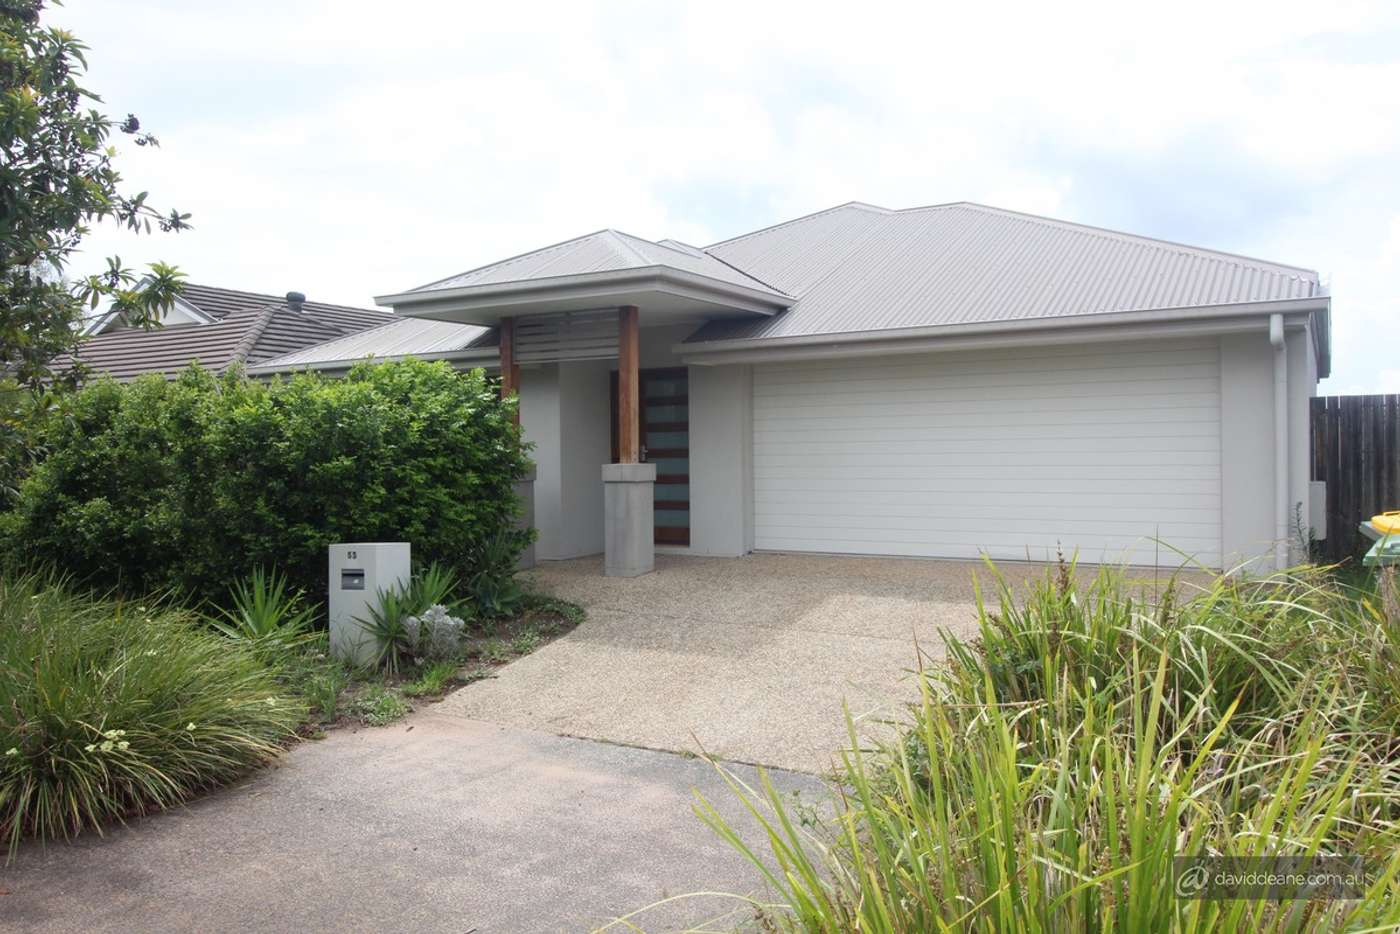 Main view of Homely house listing, 53 Clearwater Crescent, Murrumba Downs QLD 4503